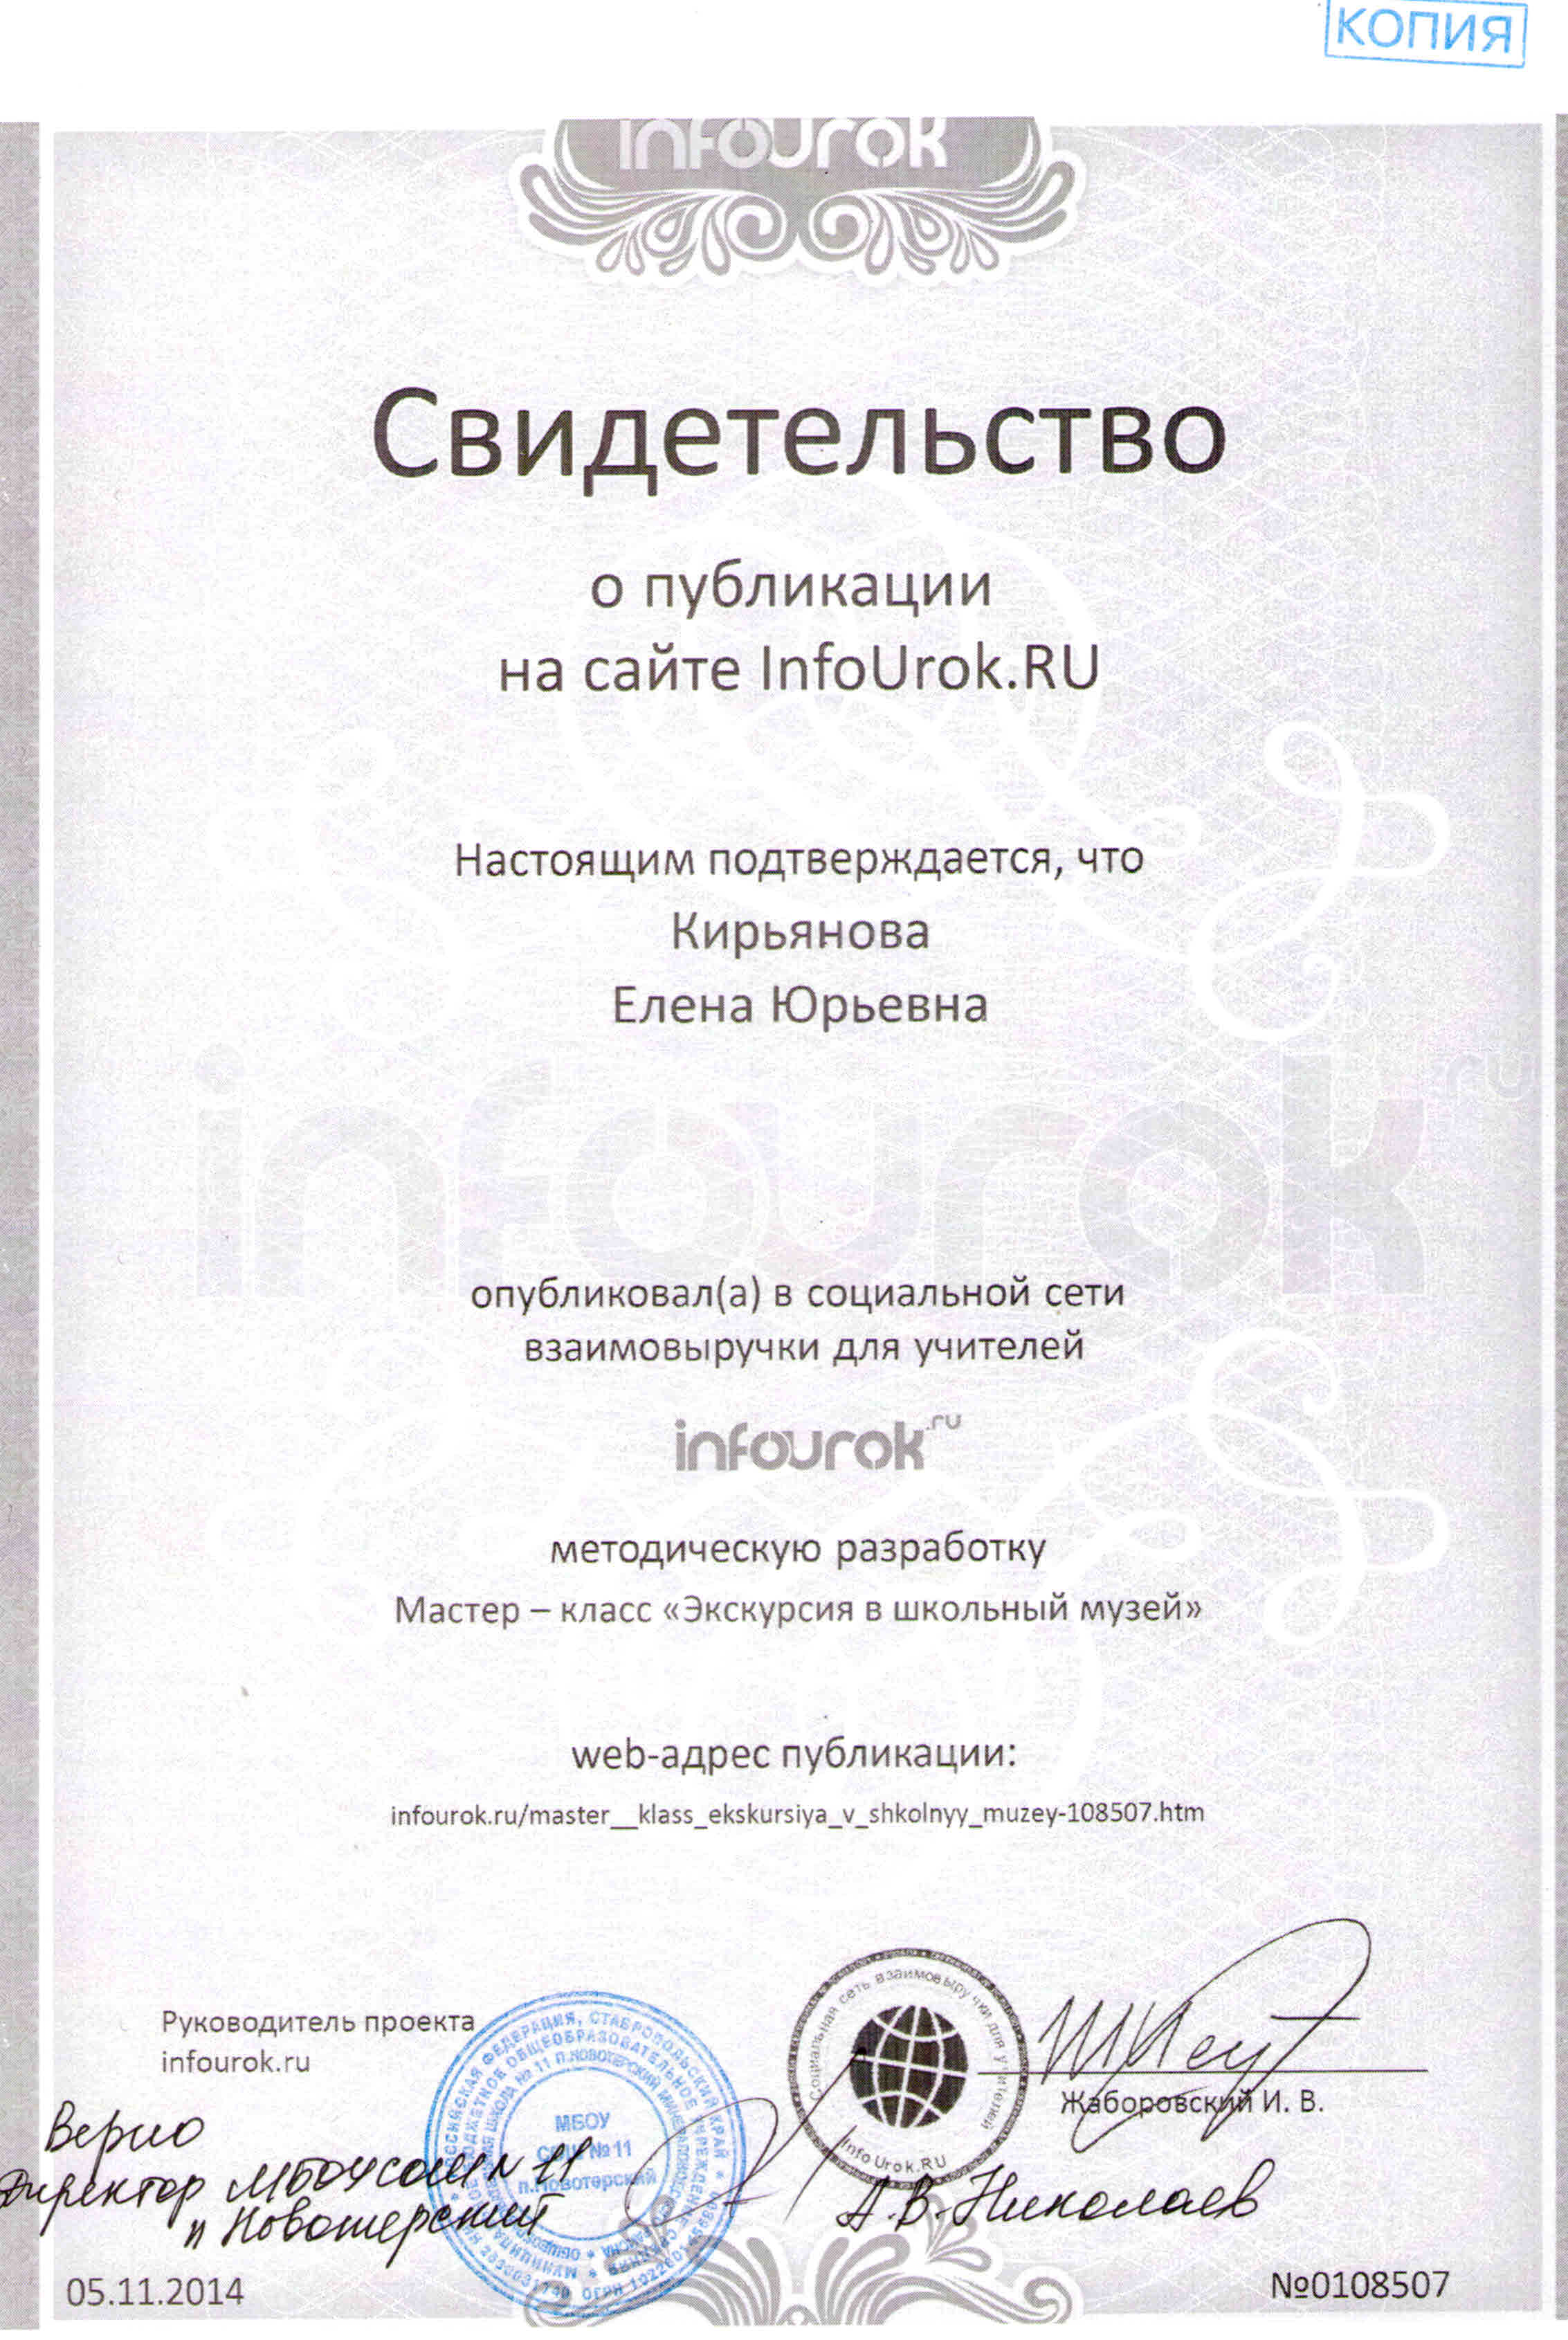 C:\Users\Сергей\Desktop\Document_31.jpg